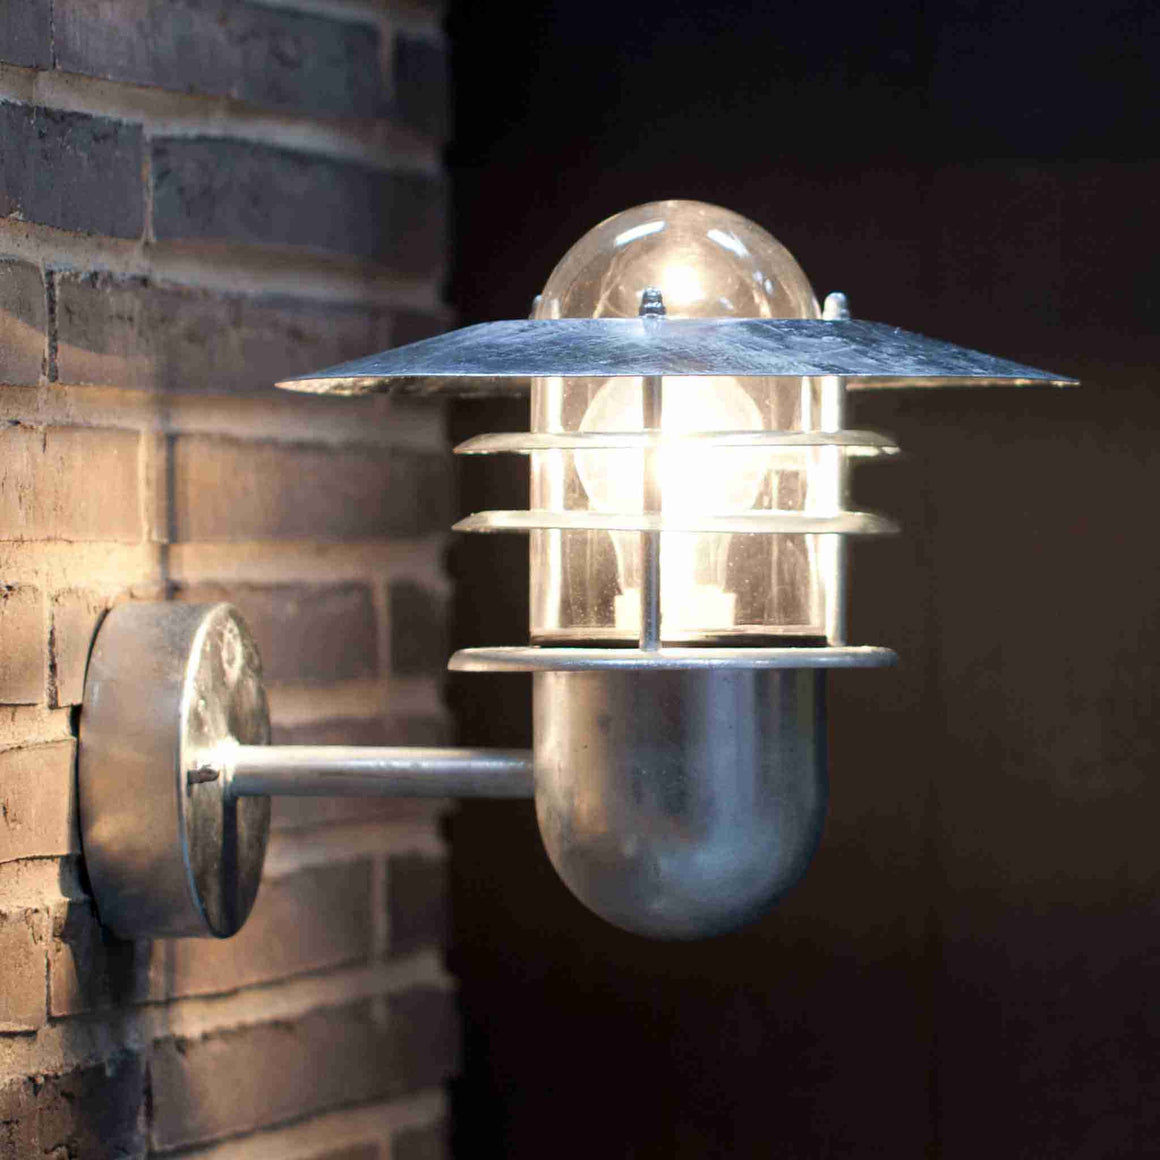 Nordlux Agger Galvanised Outdoor Wall Light - Outdoor Lighting - Lampsy